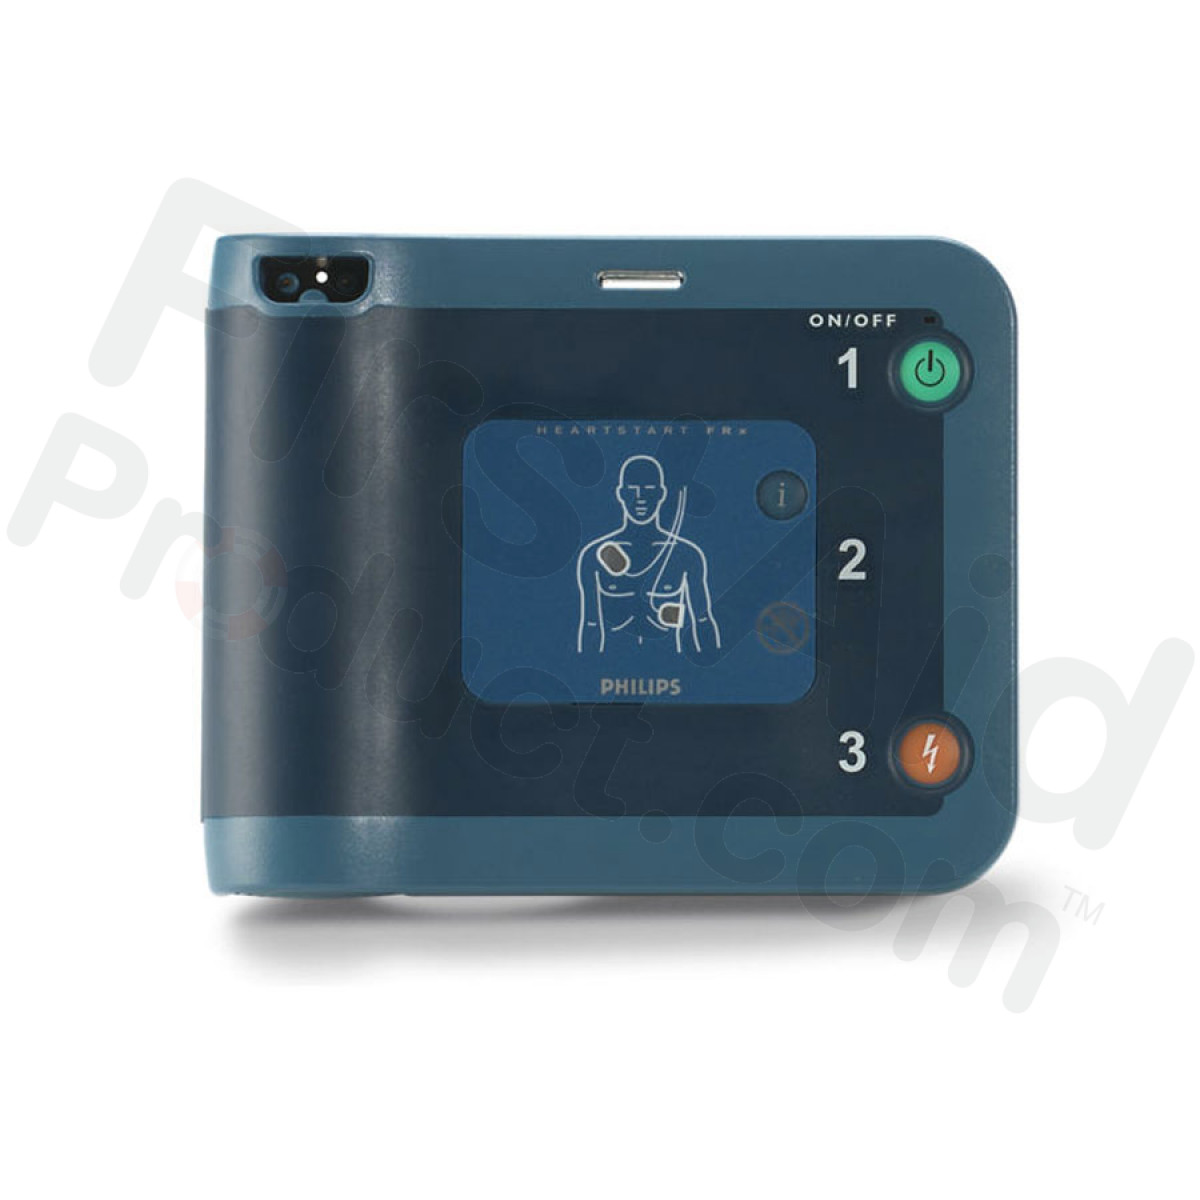 Philips Heartstart Aed Training Wiring Diagrams Batterybackupcircuitpng First Aid Product Com Frx Defibrillator Adult Rh Trainer 2 Manual